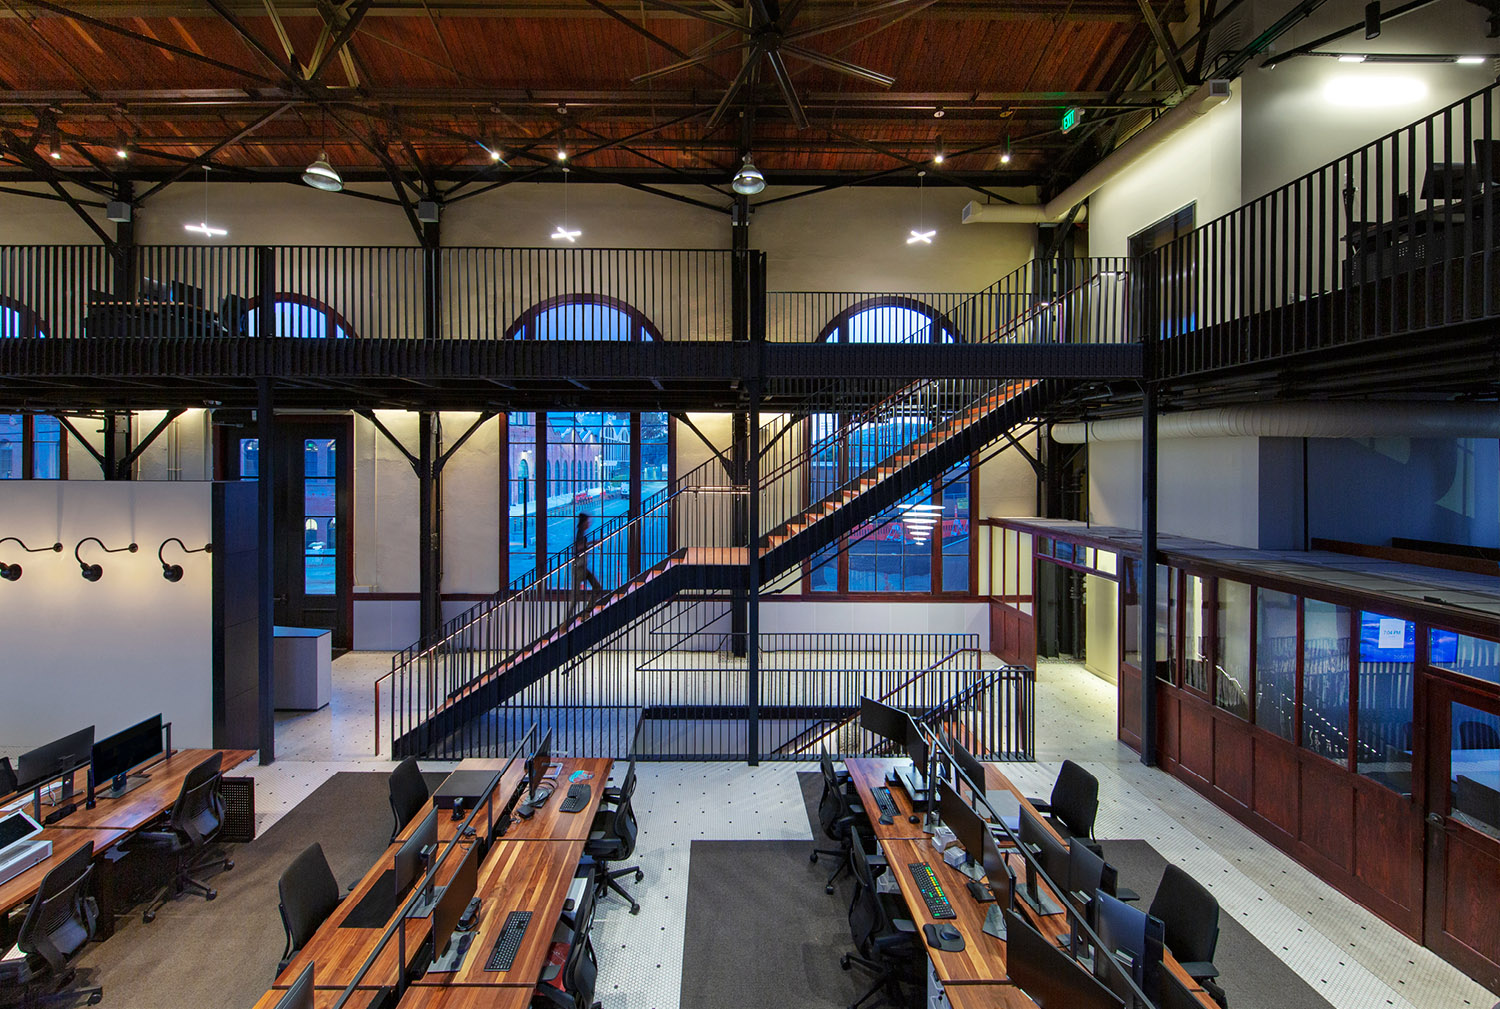 The heavy-timber construction of the new mezzanine and new stair treads is detailed to complement the exposed historic wood roof structure above, while the new steel balustrades at mezzanine guard rails and stair recall the historic exposed steel roof tru Billy Hustace